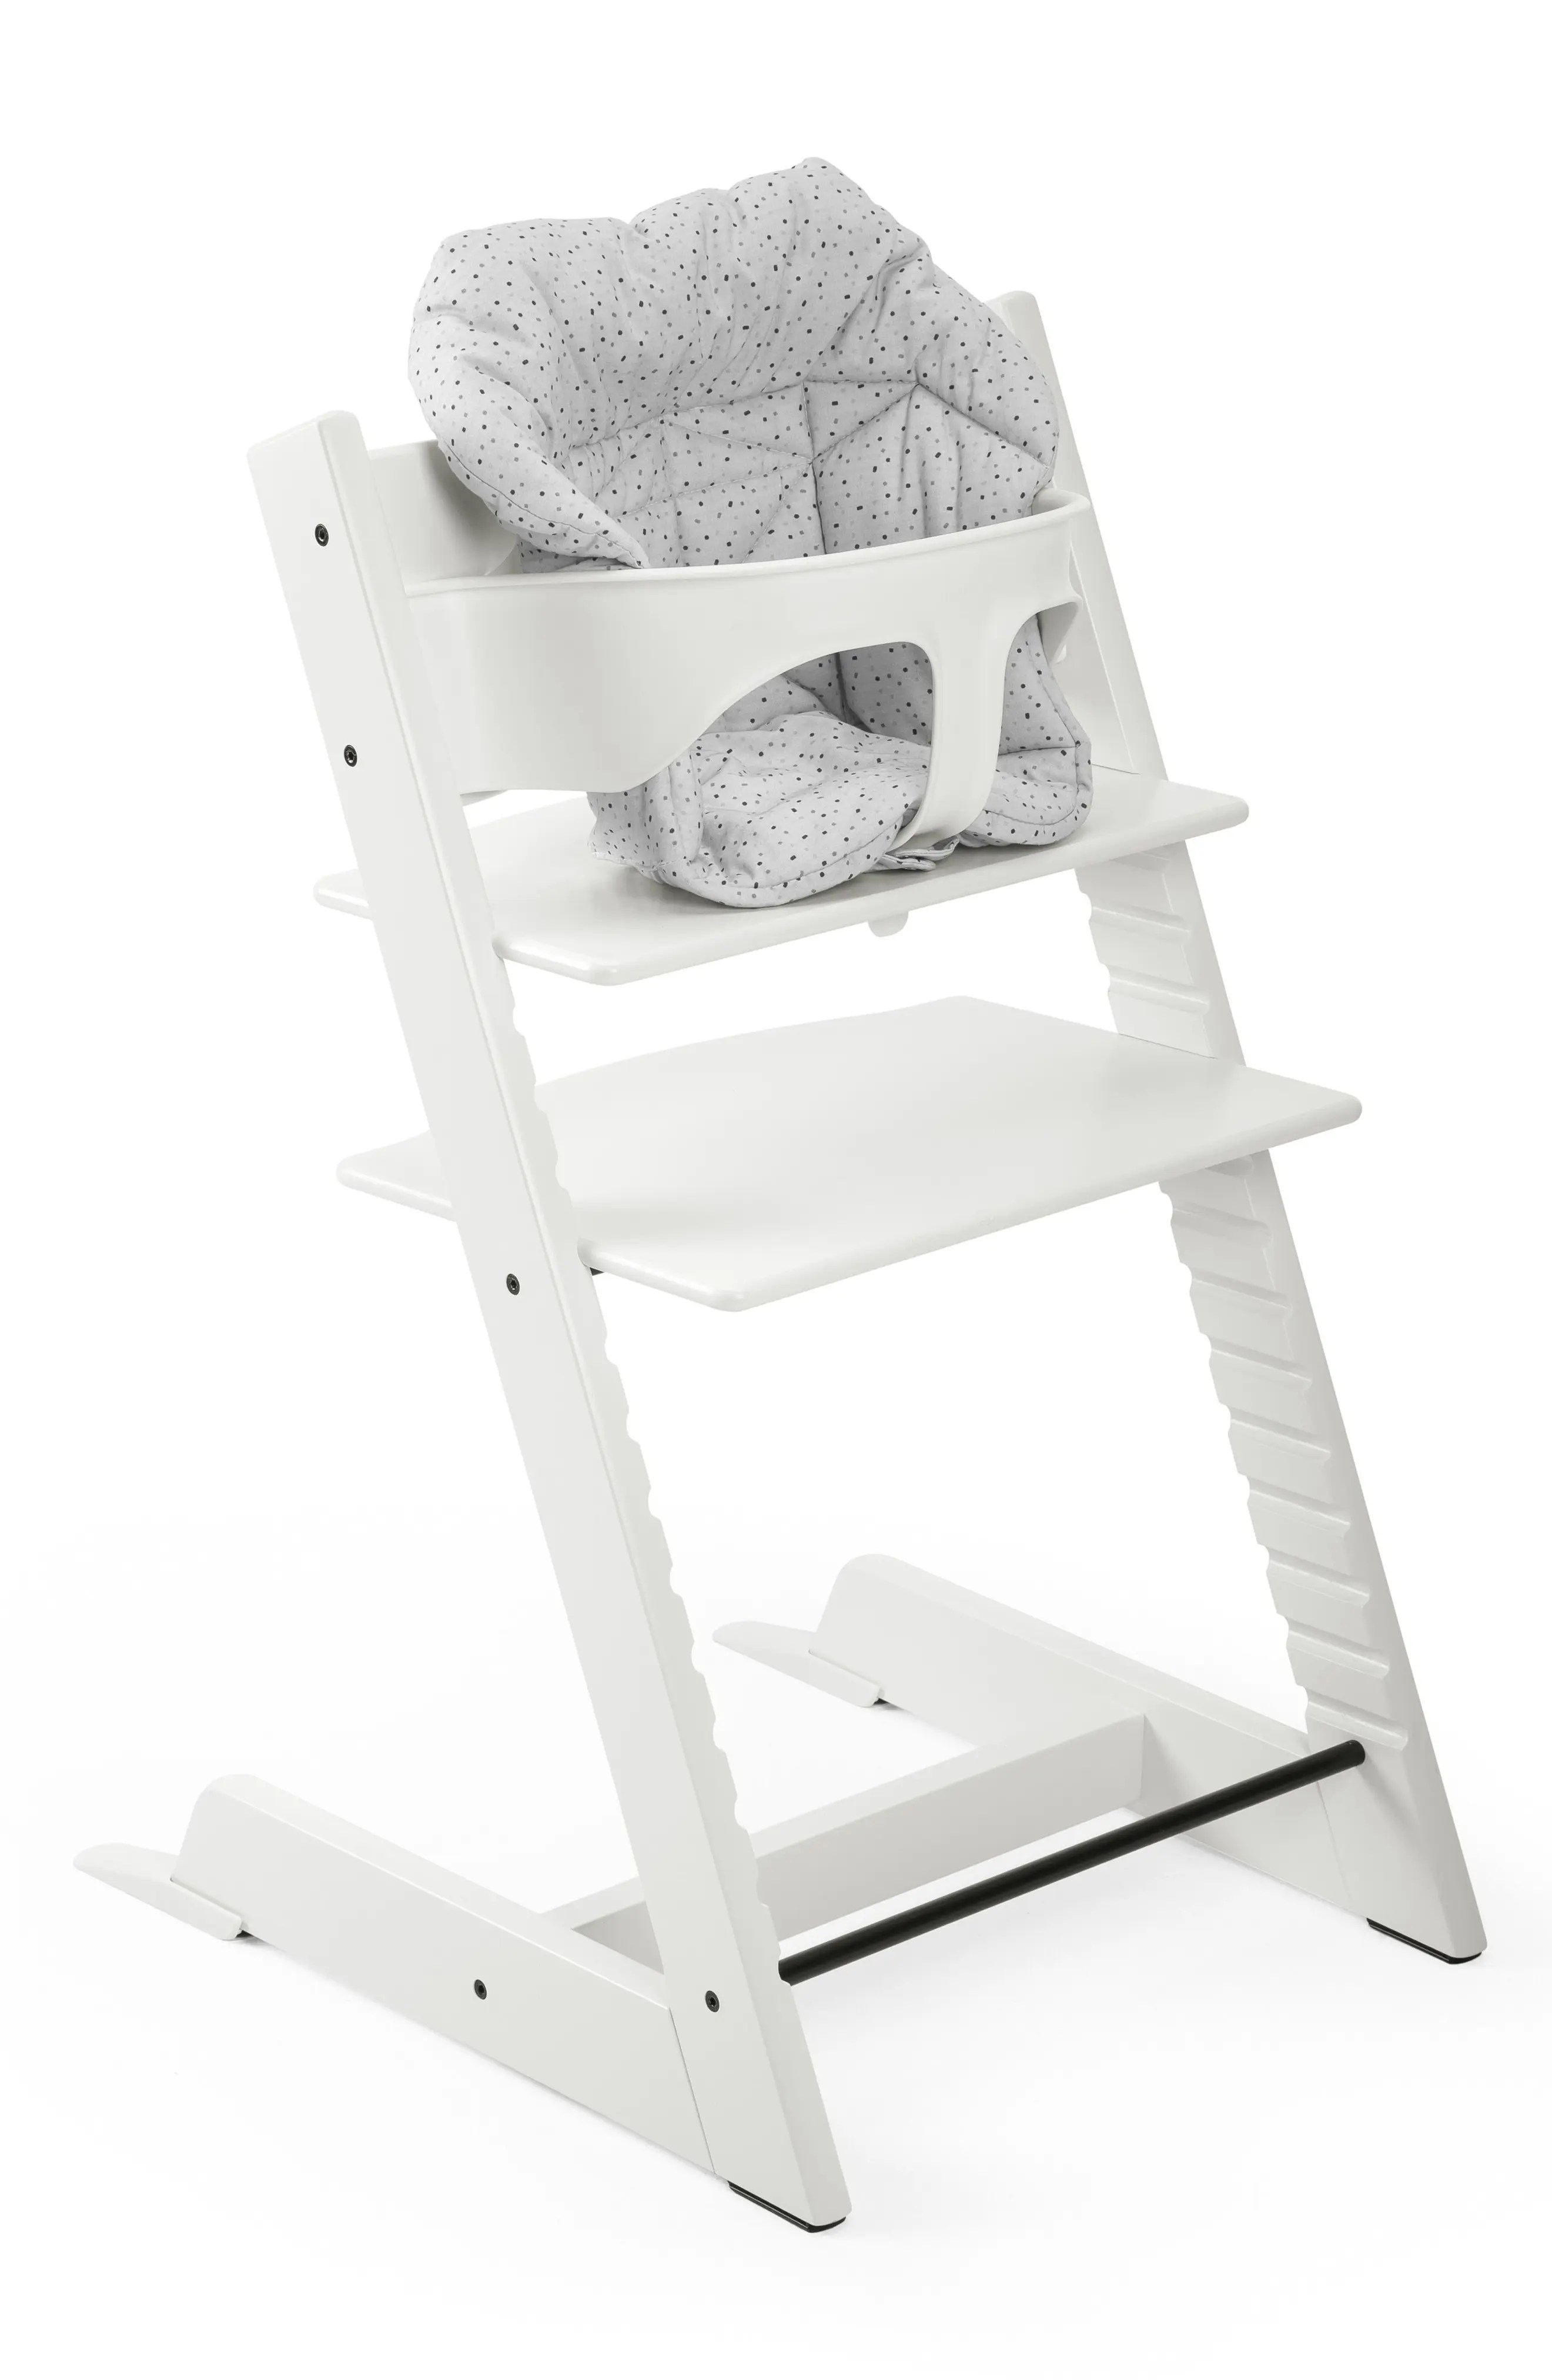 tripp trapp high chair desk etsy stokke chairs covers booster seats for tables nordstrom seat cushion highchair